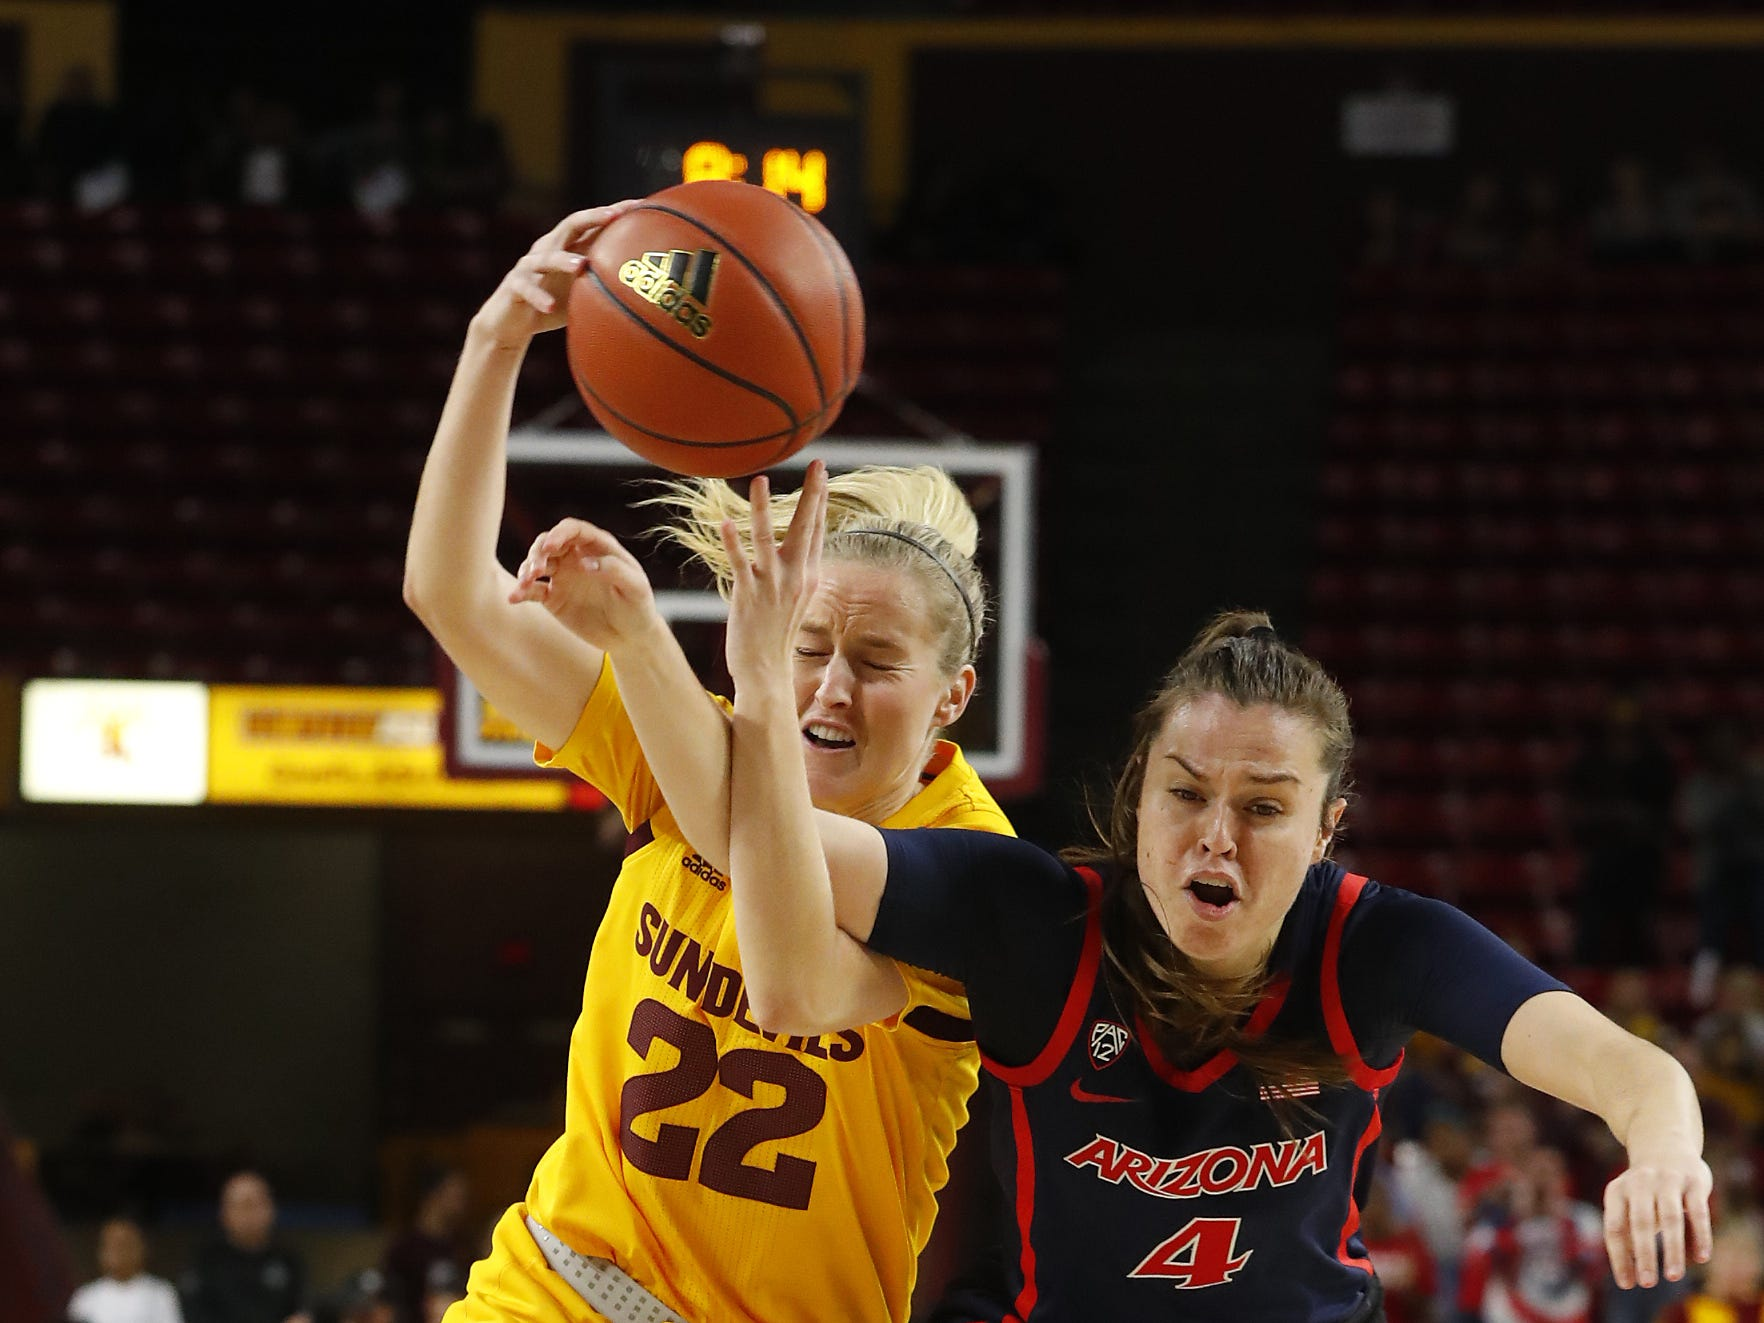 ASU's Courtney Ekmark (22) drives the lane against Arizona's Lucia Alonso (4) during the first half at Wells Fargo Arena in Tempe, Ariz. on February 1, 2019.